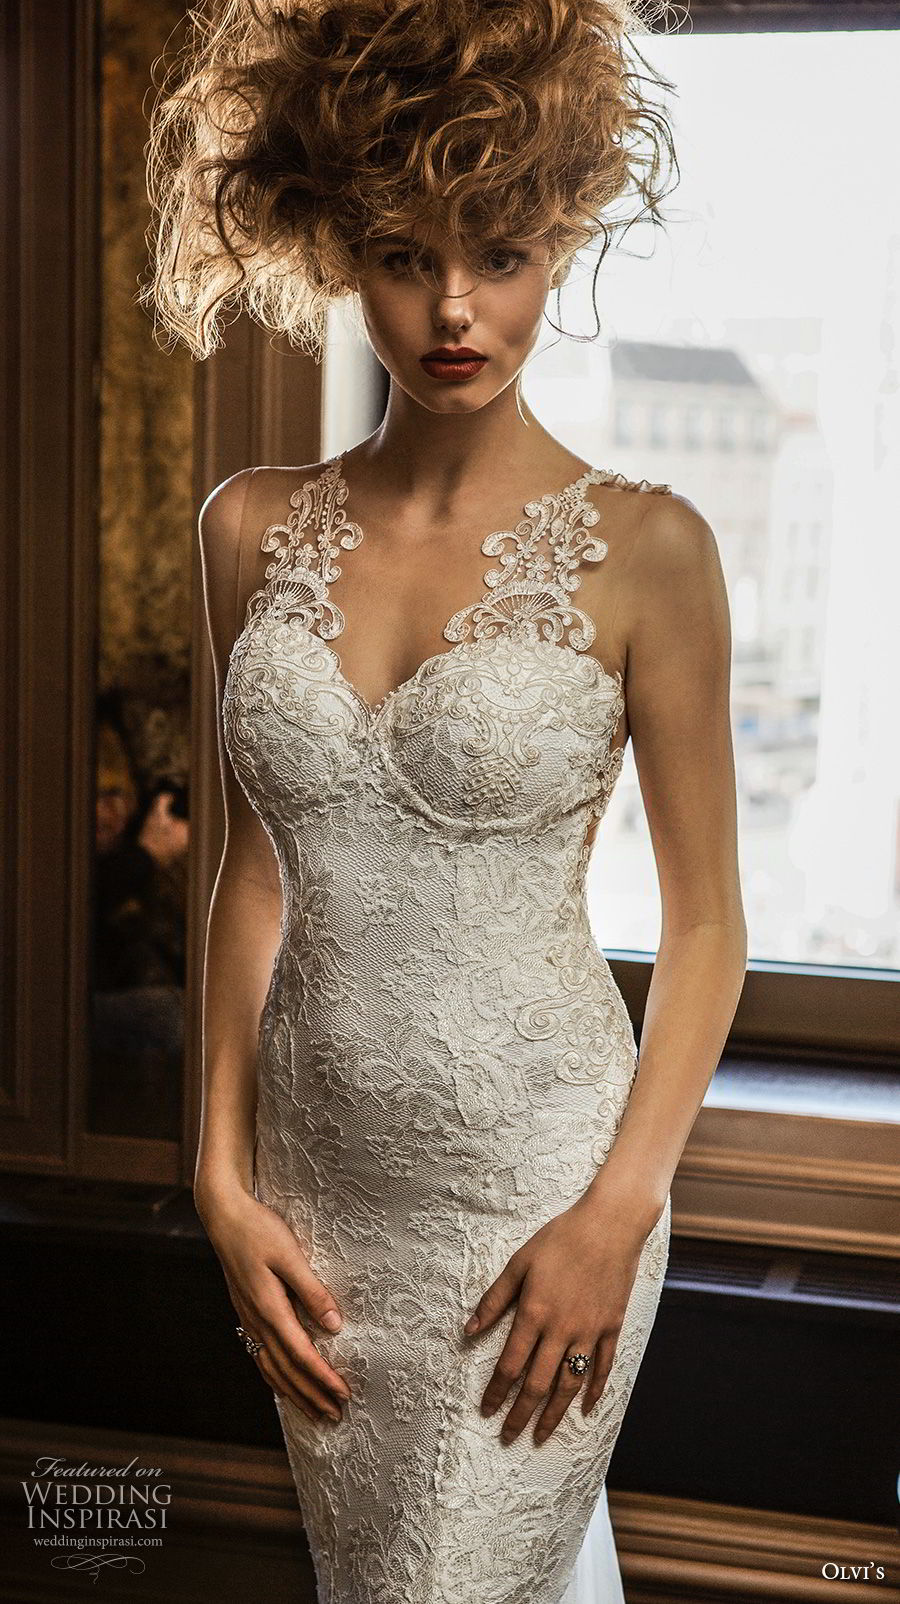 olvi 2019 bridal sleeveless with strap sweetheart neckline full embellishment elegant fit and flare wedding dress chapel train (13) zv